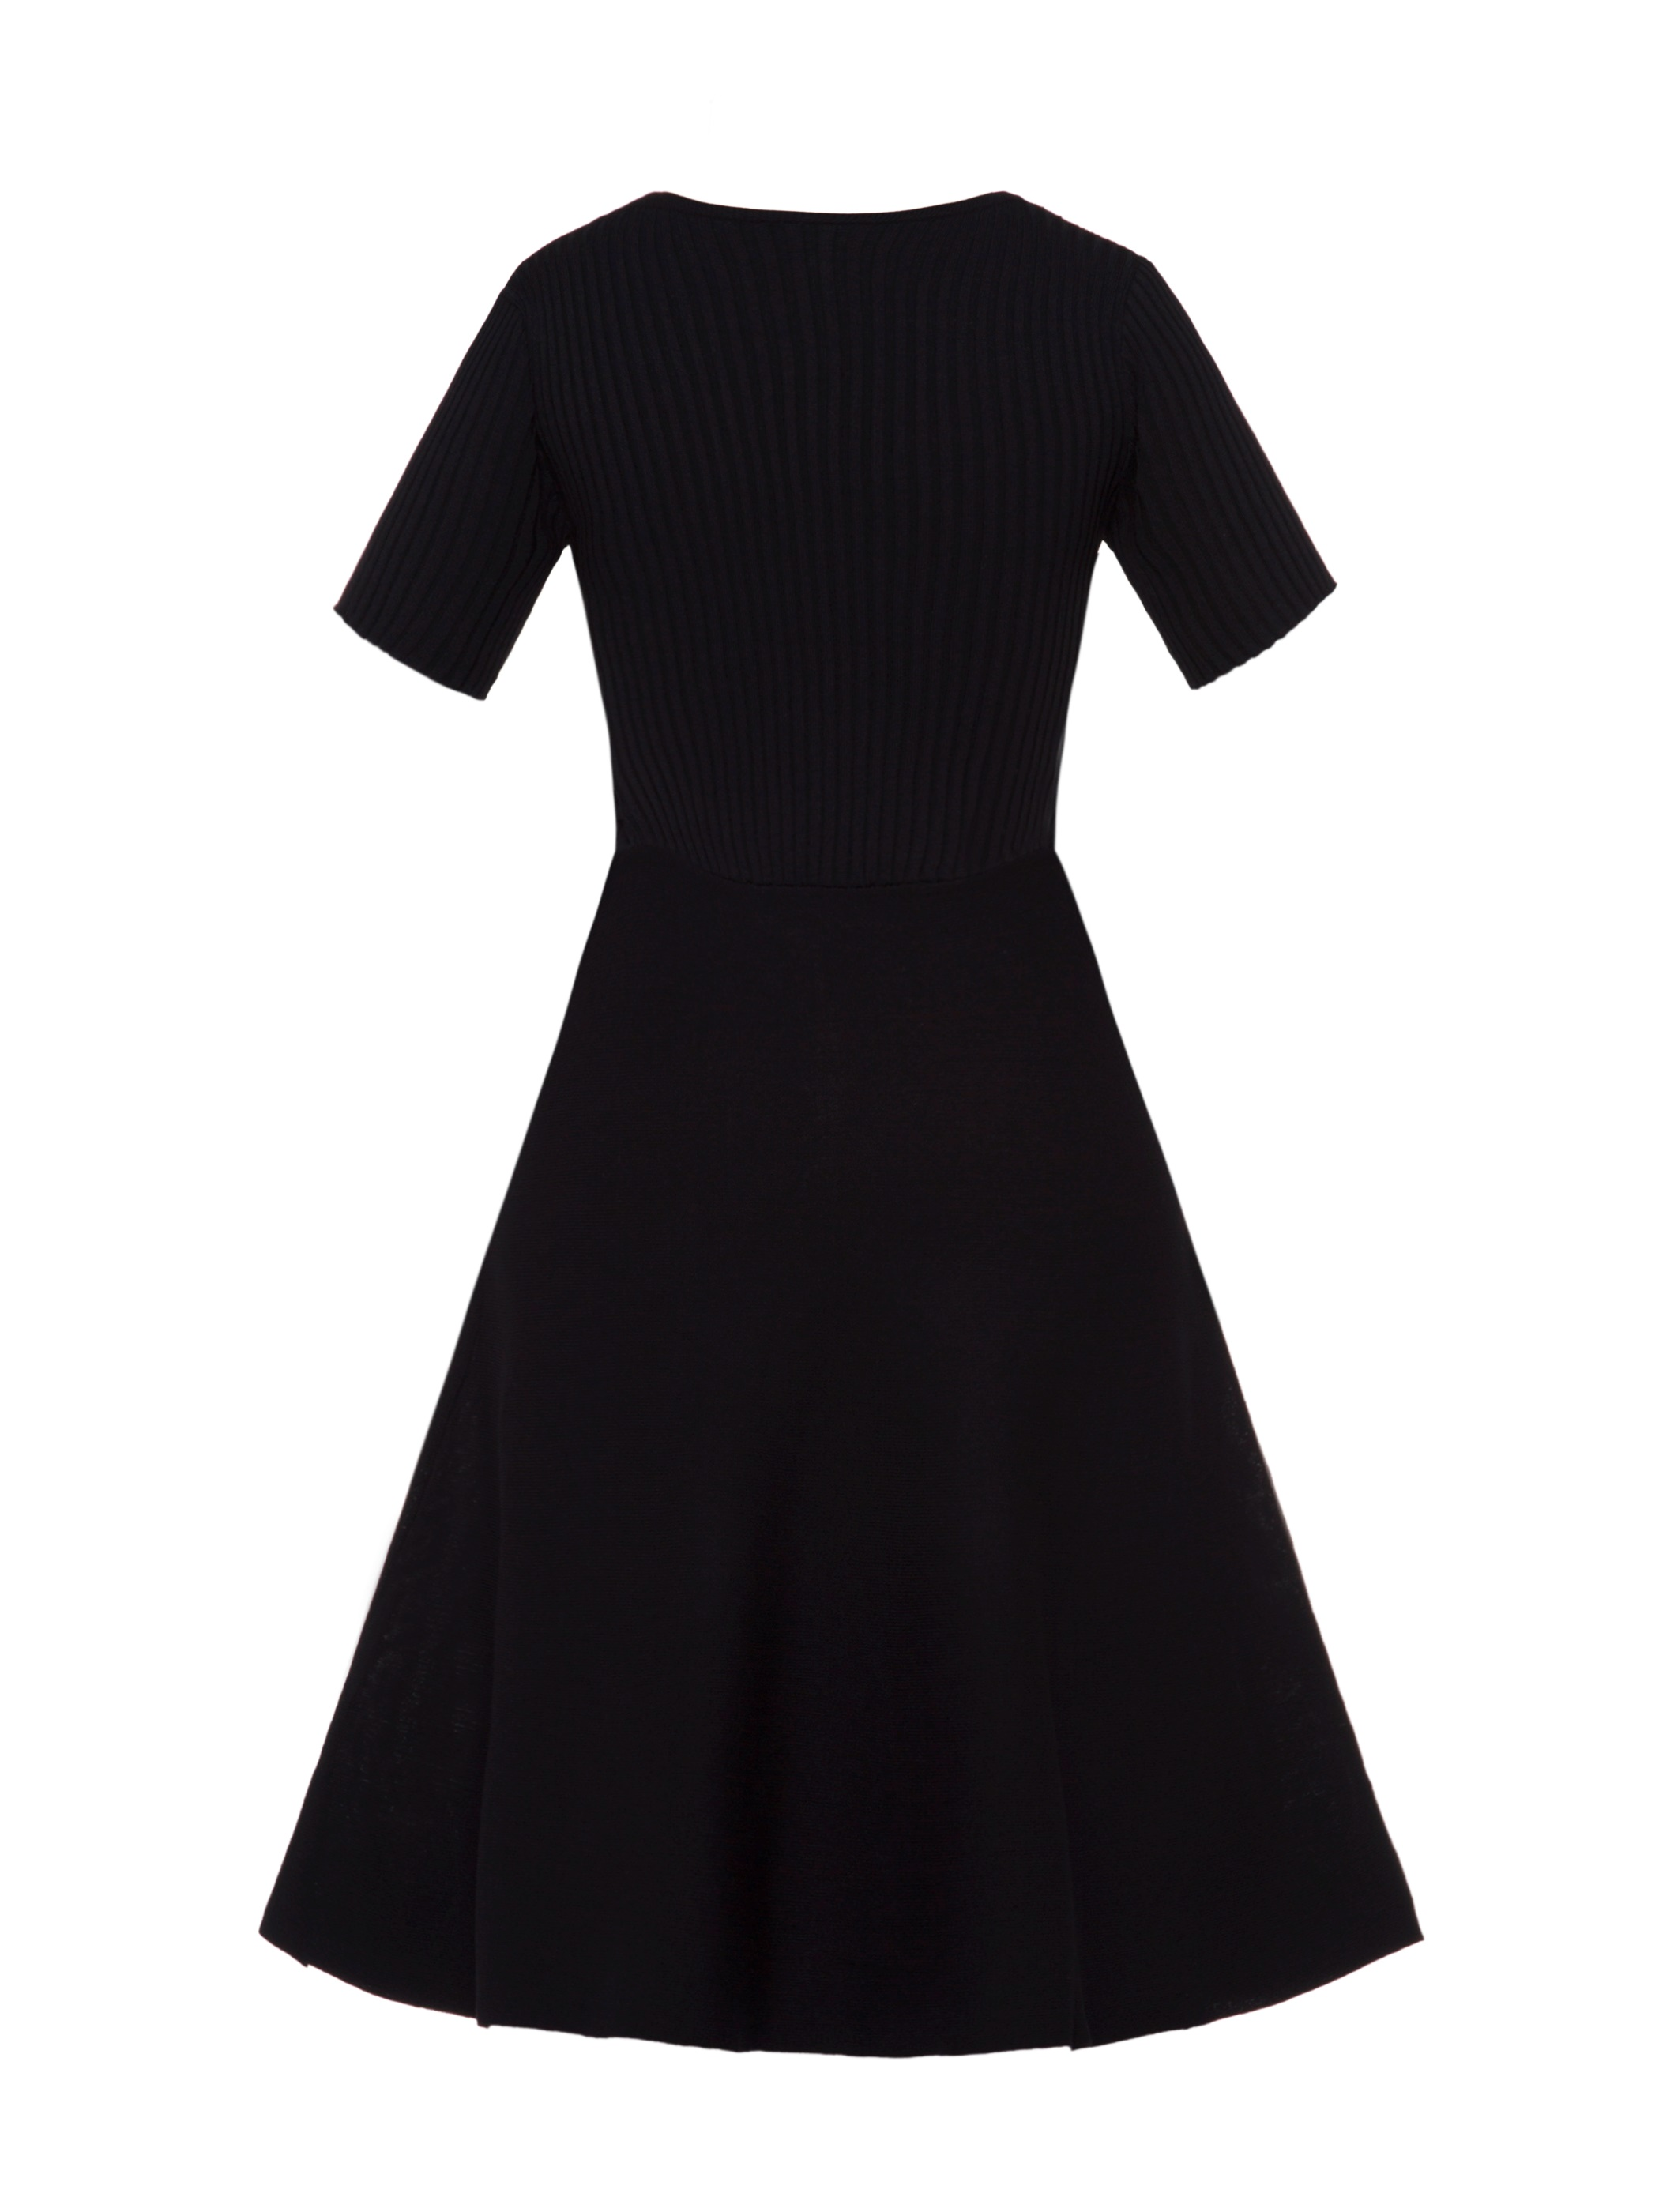 Ericdress Round Neck Plain Knee-Length A-Line Dress